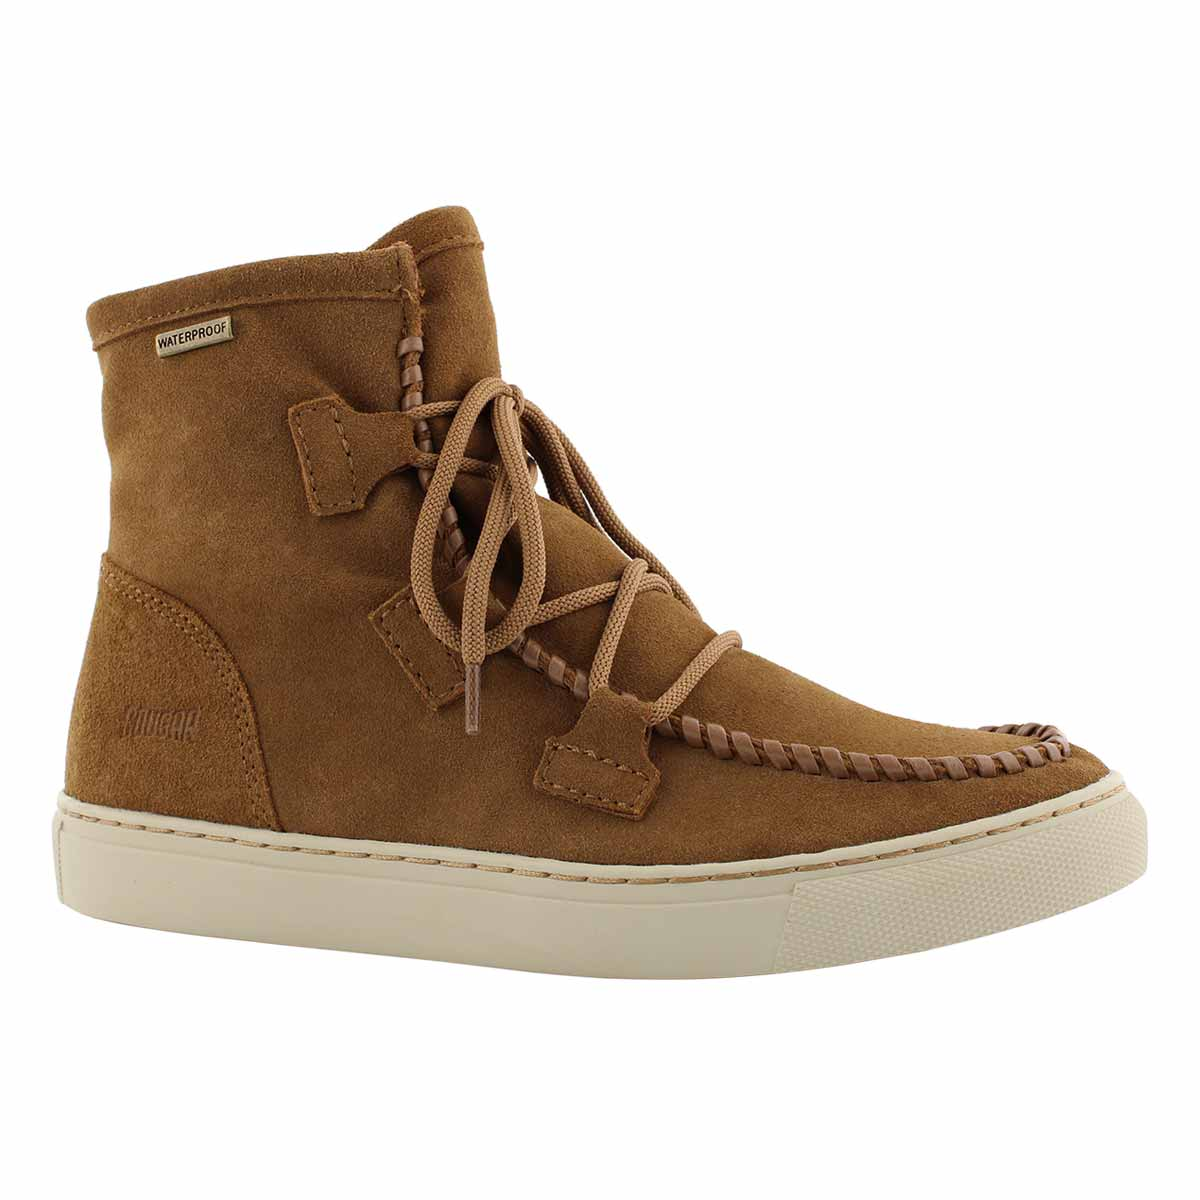 Lds Fabiola hzl wtpf lace up ankle boot